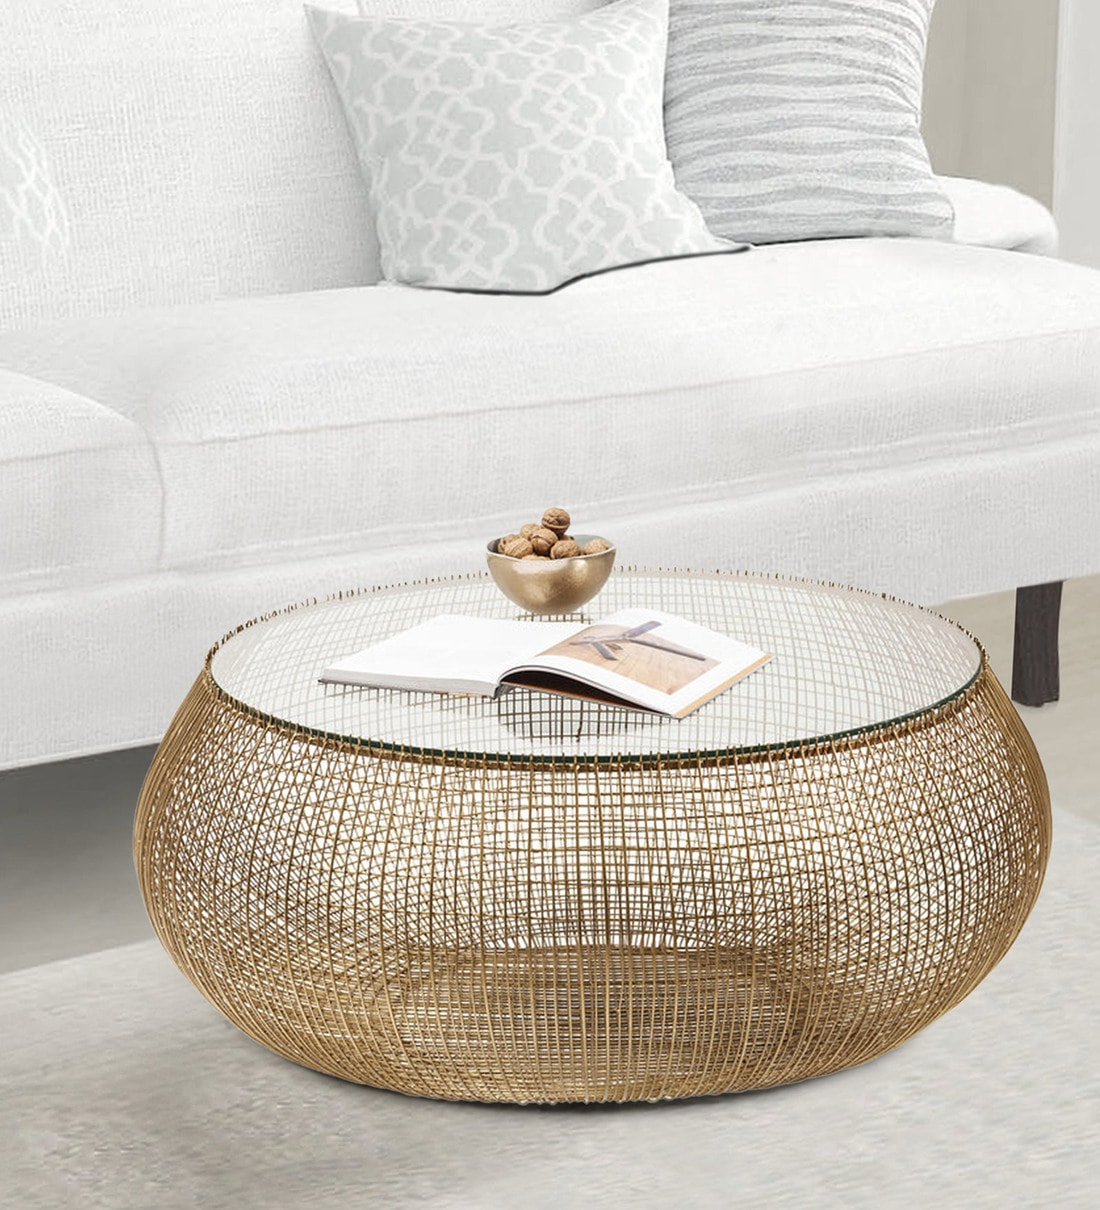 Buy Cannes Round Round Coffee Table In Golden Finish By Trendy Deco Online Round Coffee Tables Tables Furniture Pepperfry Product